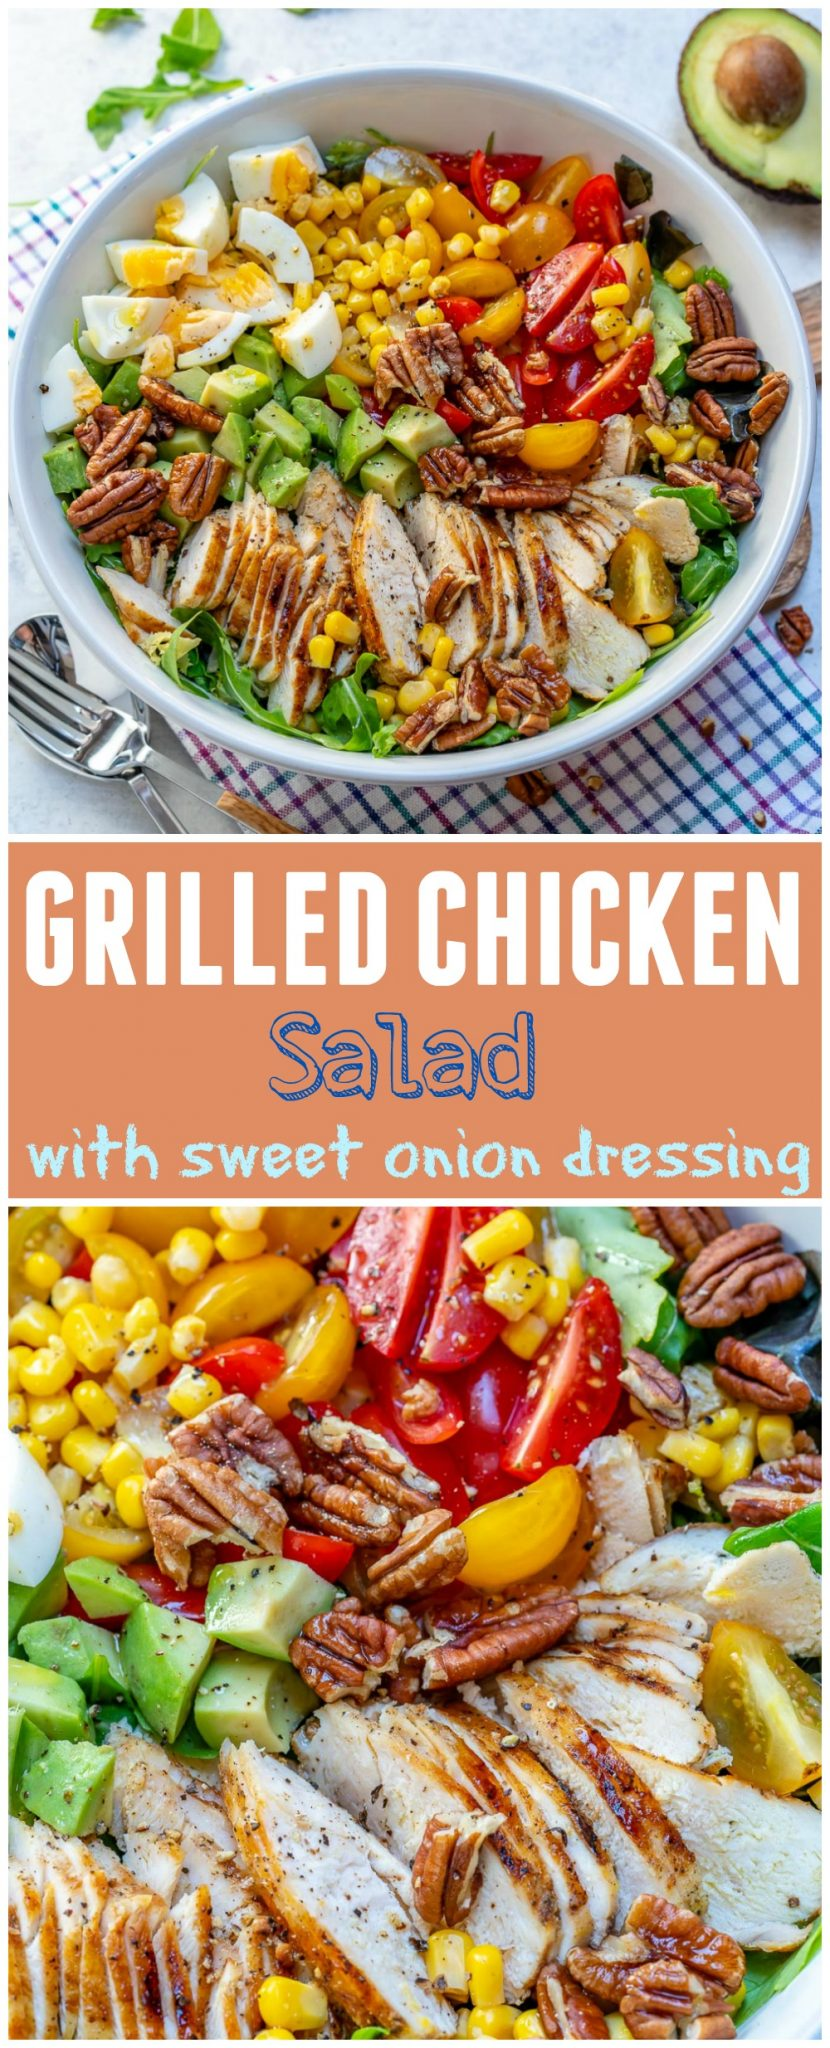 Grilled Chicken Clean Salad Recipes